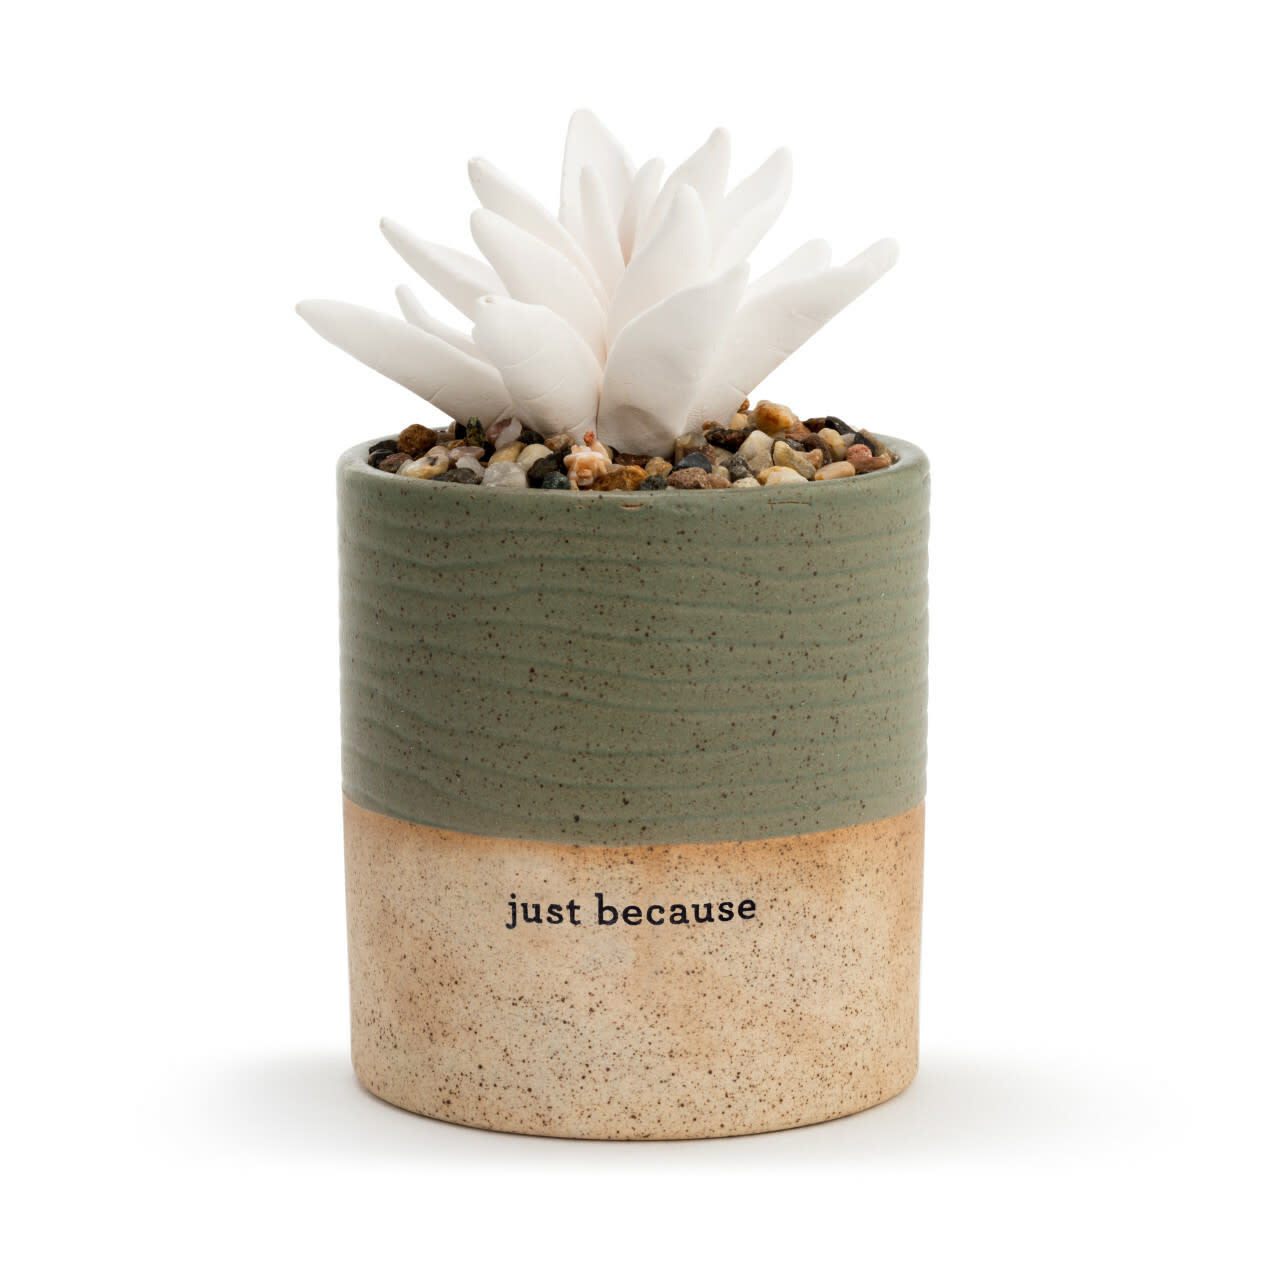 Demdaco Succulent Oil Diffuser - Just Because